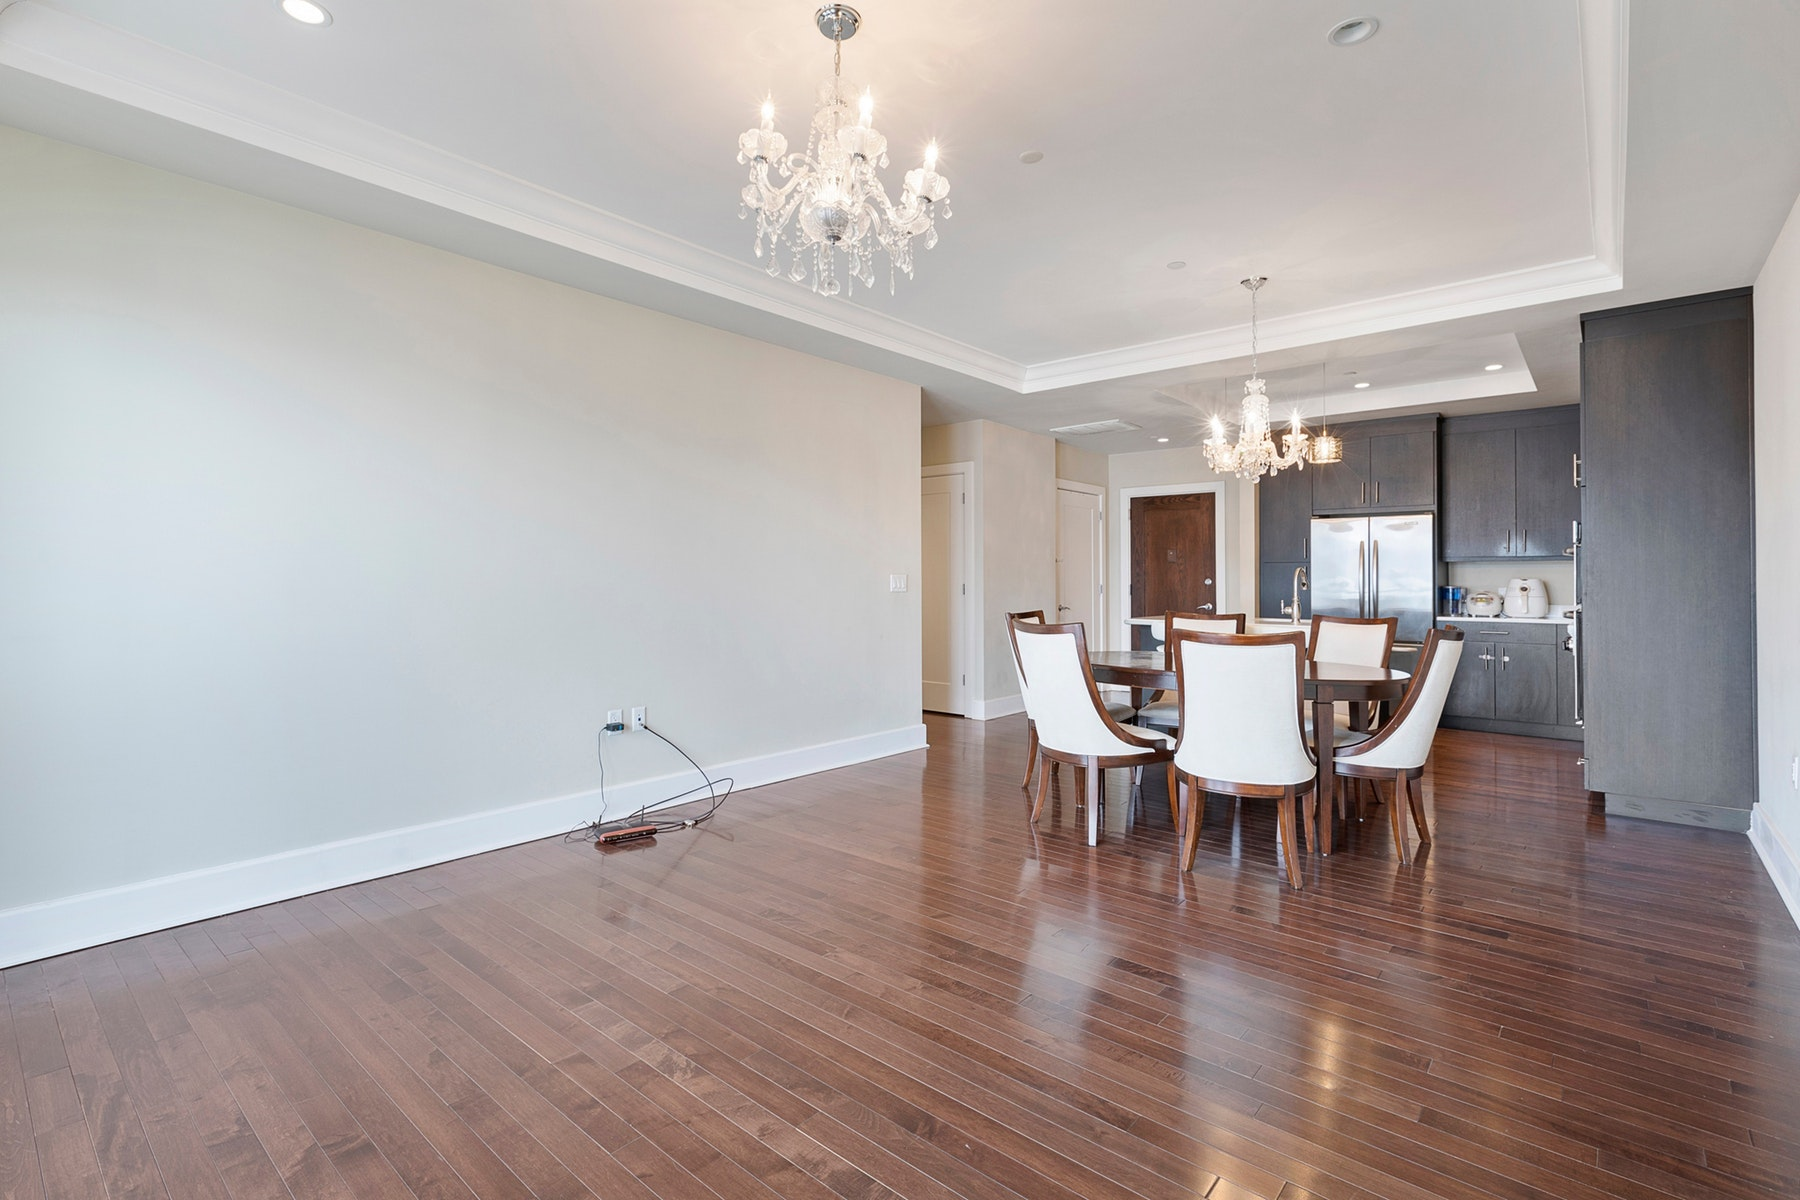 Additional photo for property listing at Henley On Hudson 250 Henley Place 207, Weehawken, New Jersey 07086 États-Unis